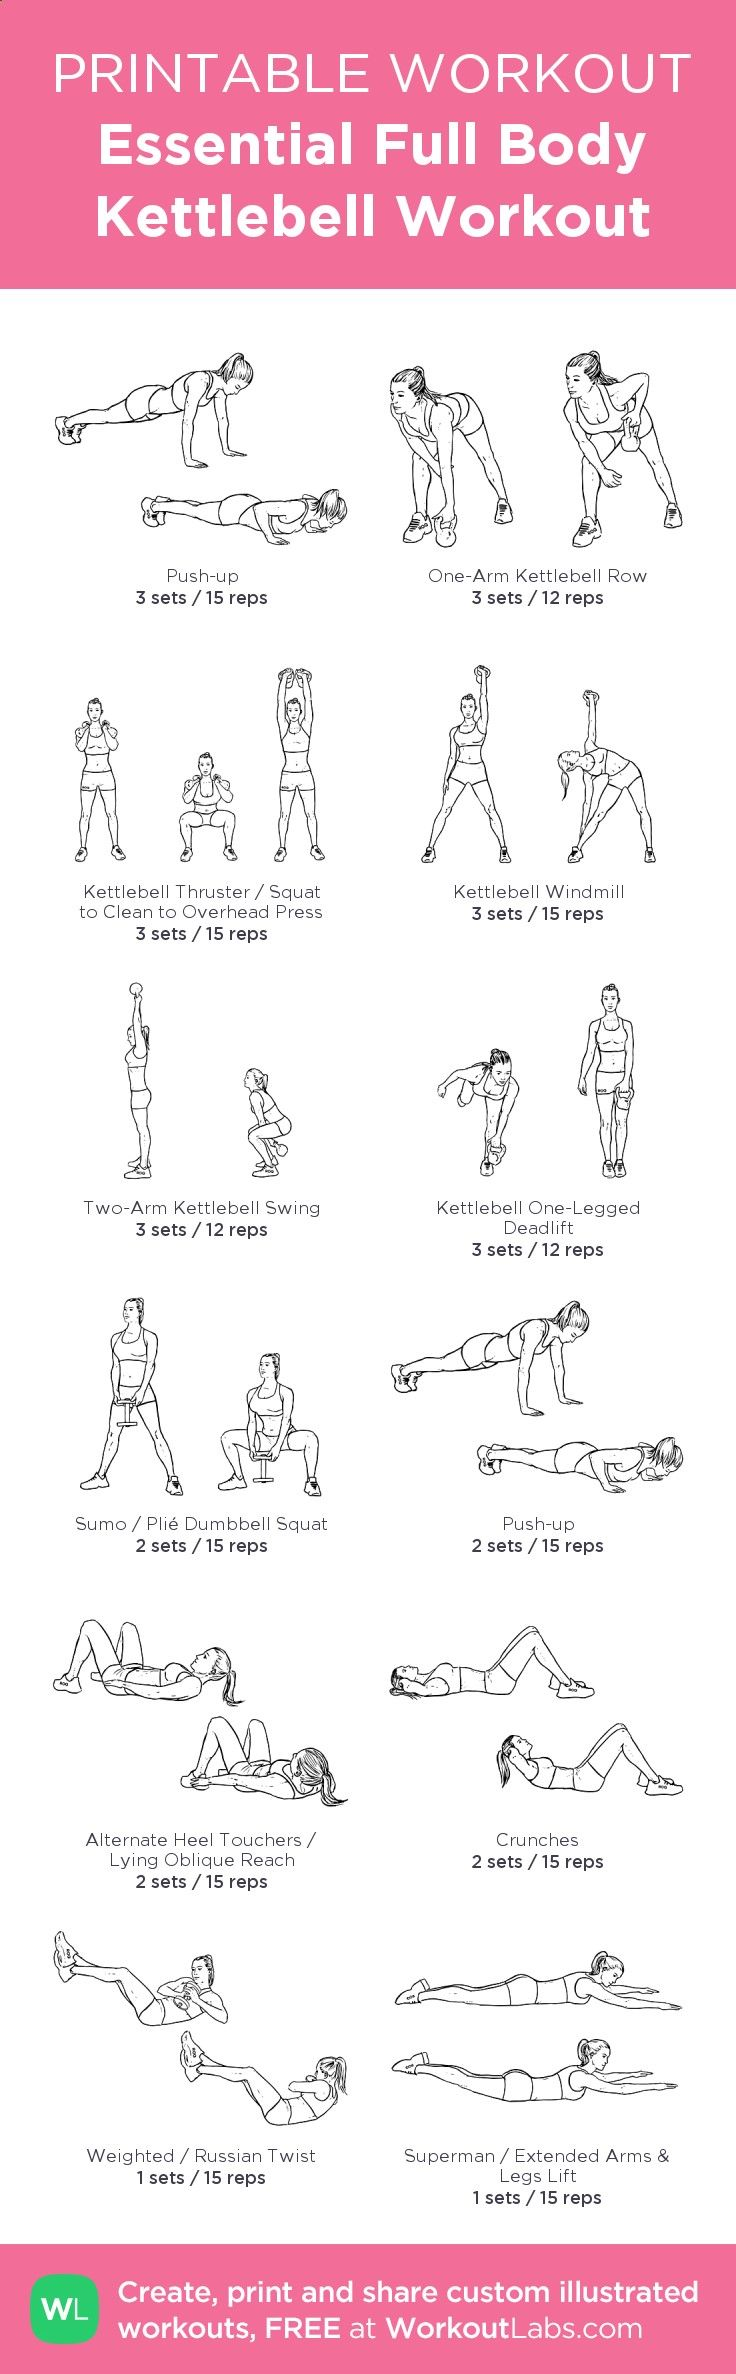 Essential Full Body Kettlebell Gym Workout with illustrated exercises. Download the FREE PDF at: wlabs.me/1u2CjXv